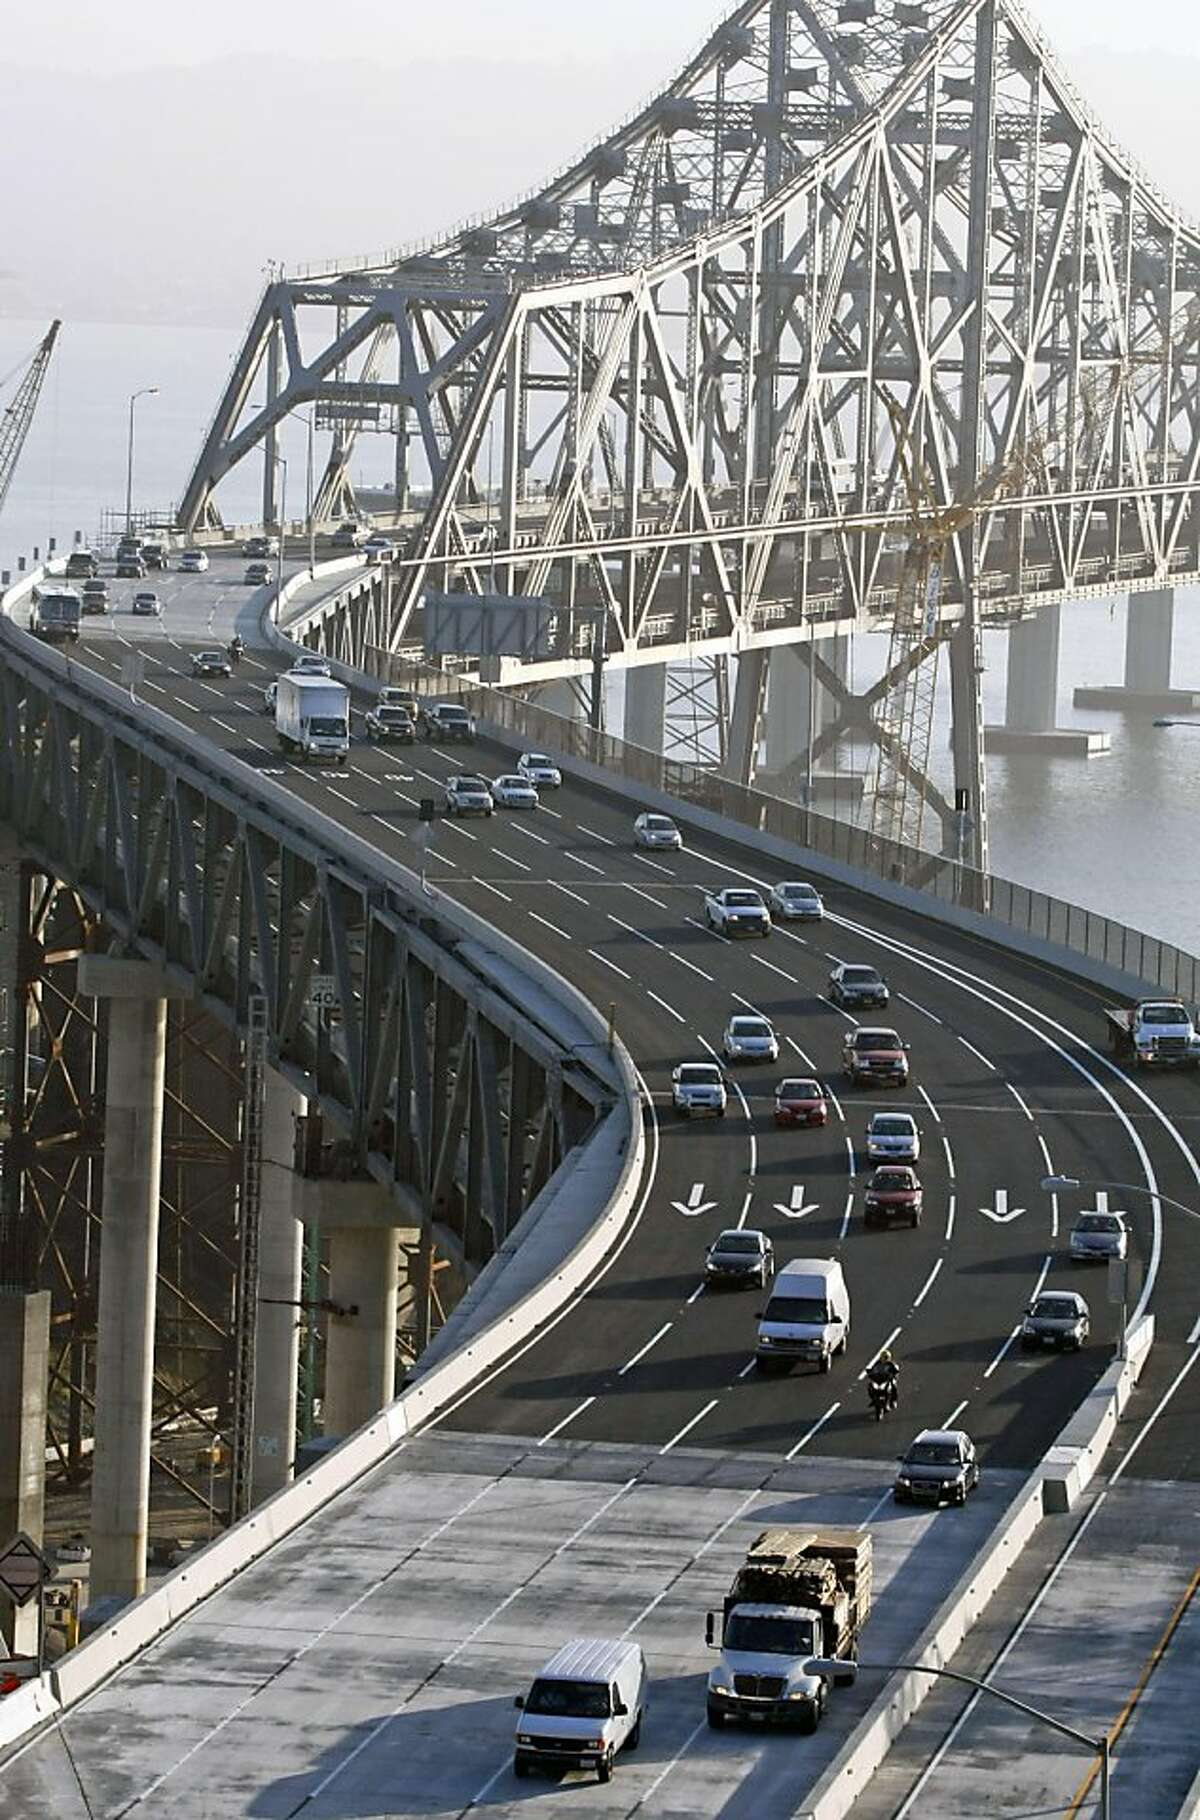 Commuters across the Bay Bridge and the new S curve section early Tuesday Sept 8, 2009. Cal-Trans finished their repairs early on the cracked eye-bar, reopening the bridge at 7am only two hours past their target time of 5am.